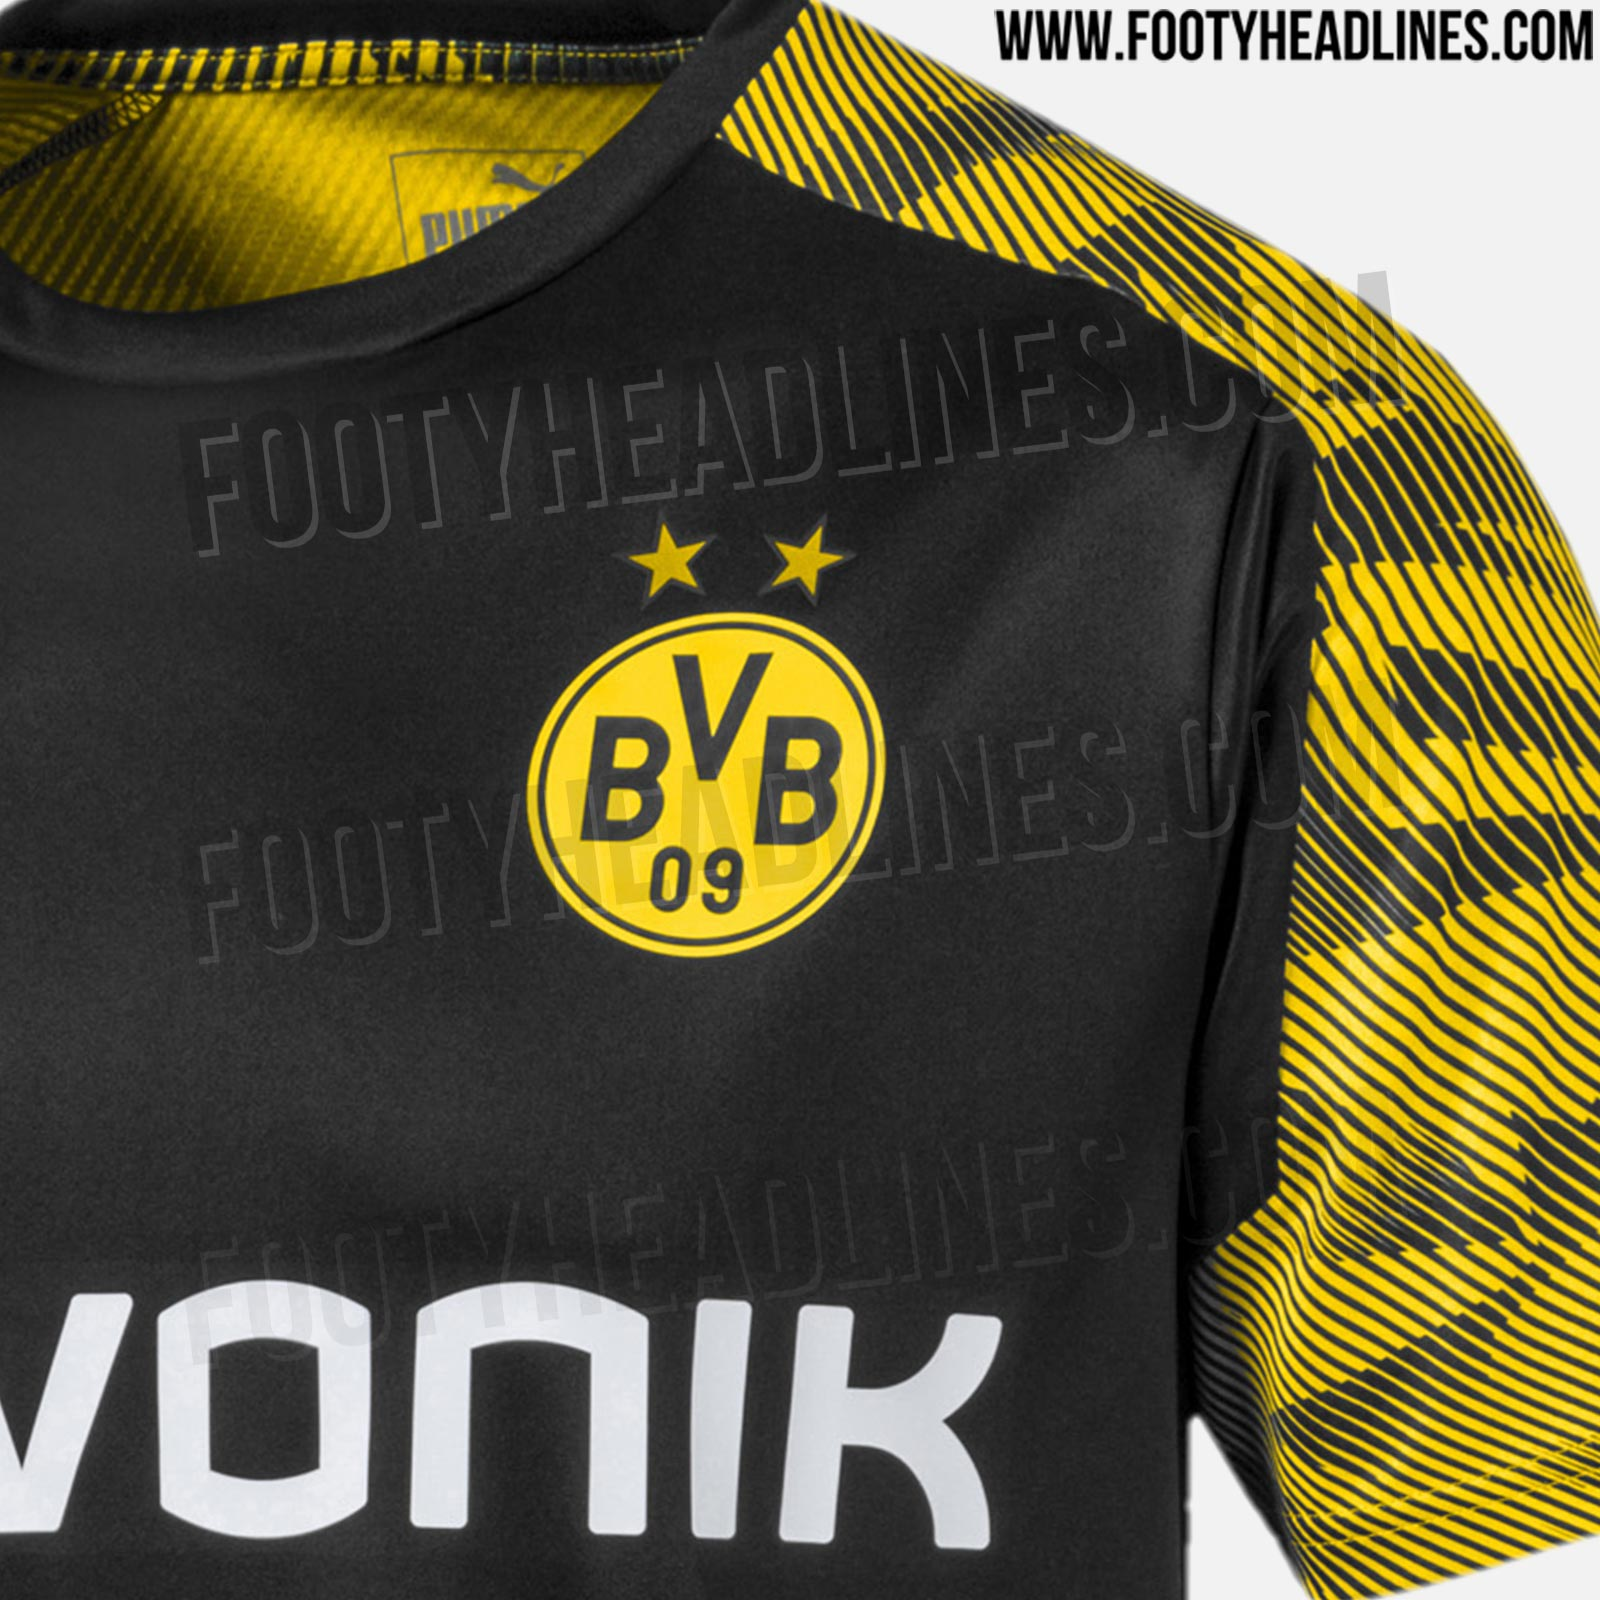 Borussia Dortmund 19-20 Training Kits Leaked - Footy Headlines